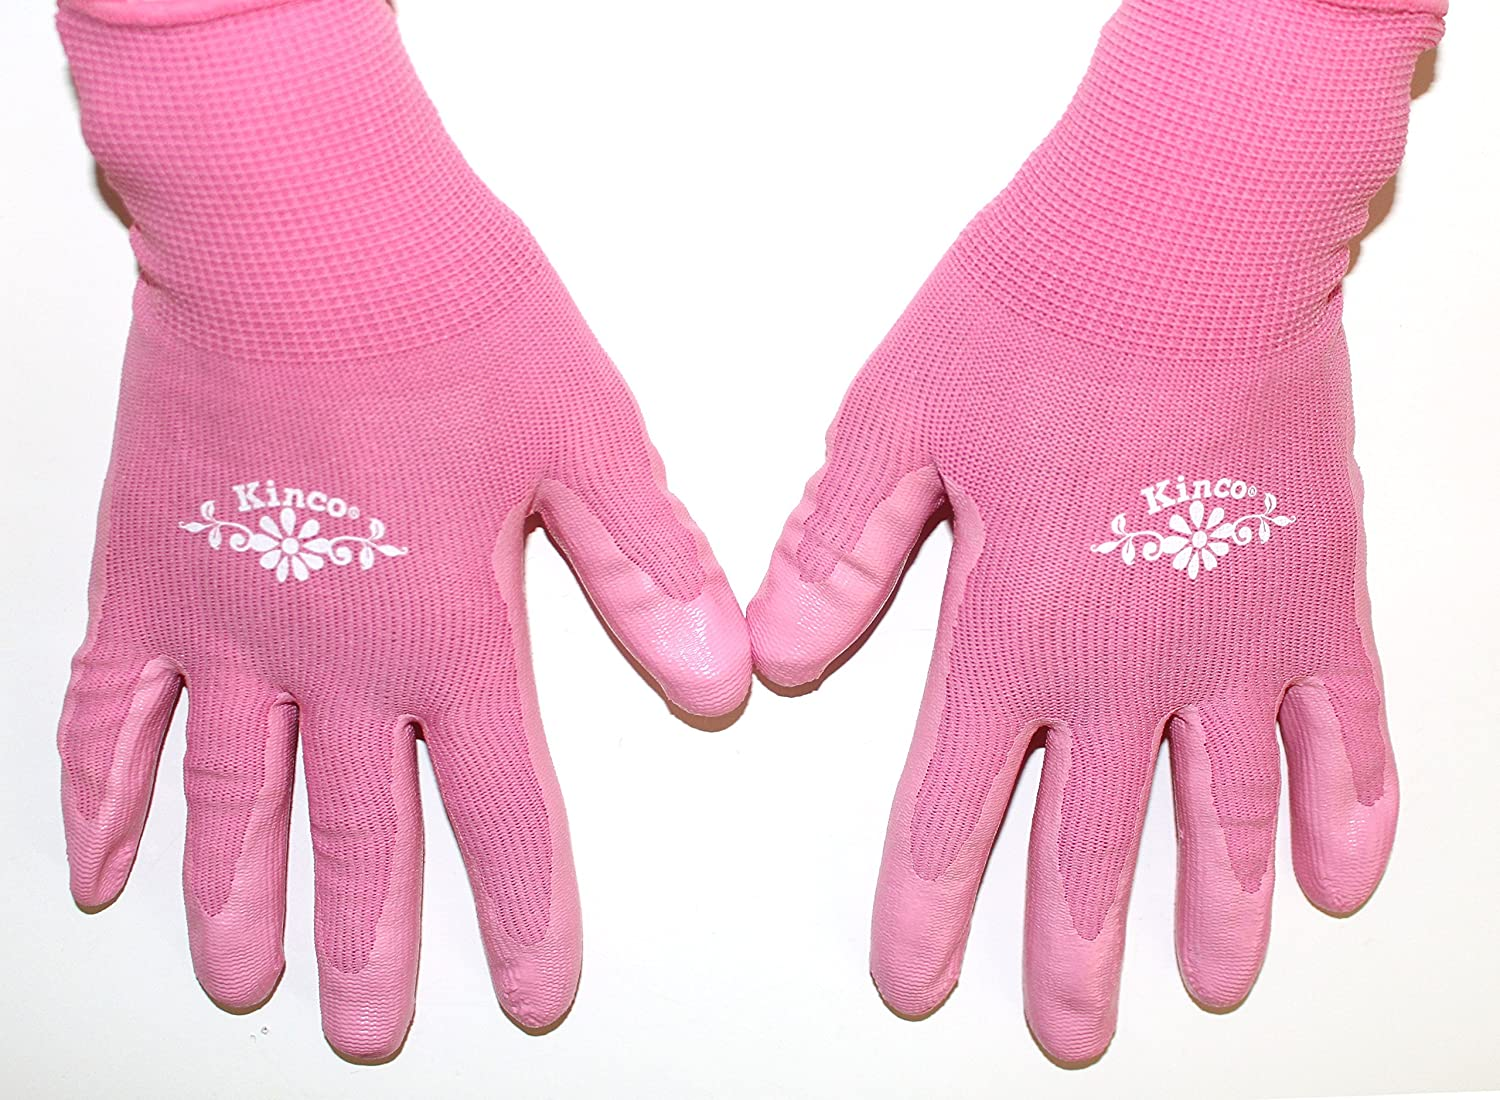 Small Womens Gardening Gloves 2-PackBright Pink Nylon KINIT Shell /& NITRLE Palm Kinco 1891WK Perfect Lightweight Glove with Dexterity and Durability.